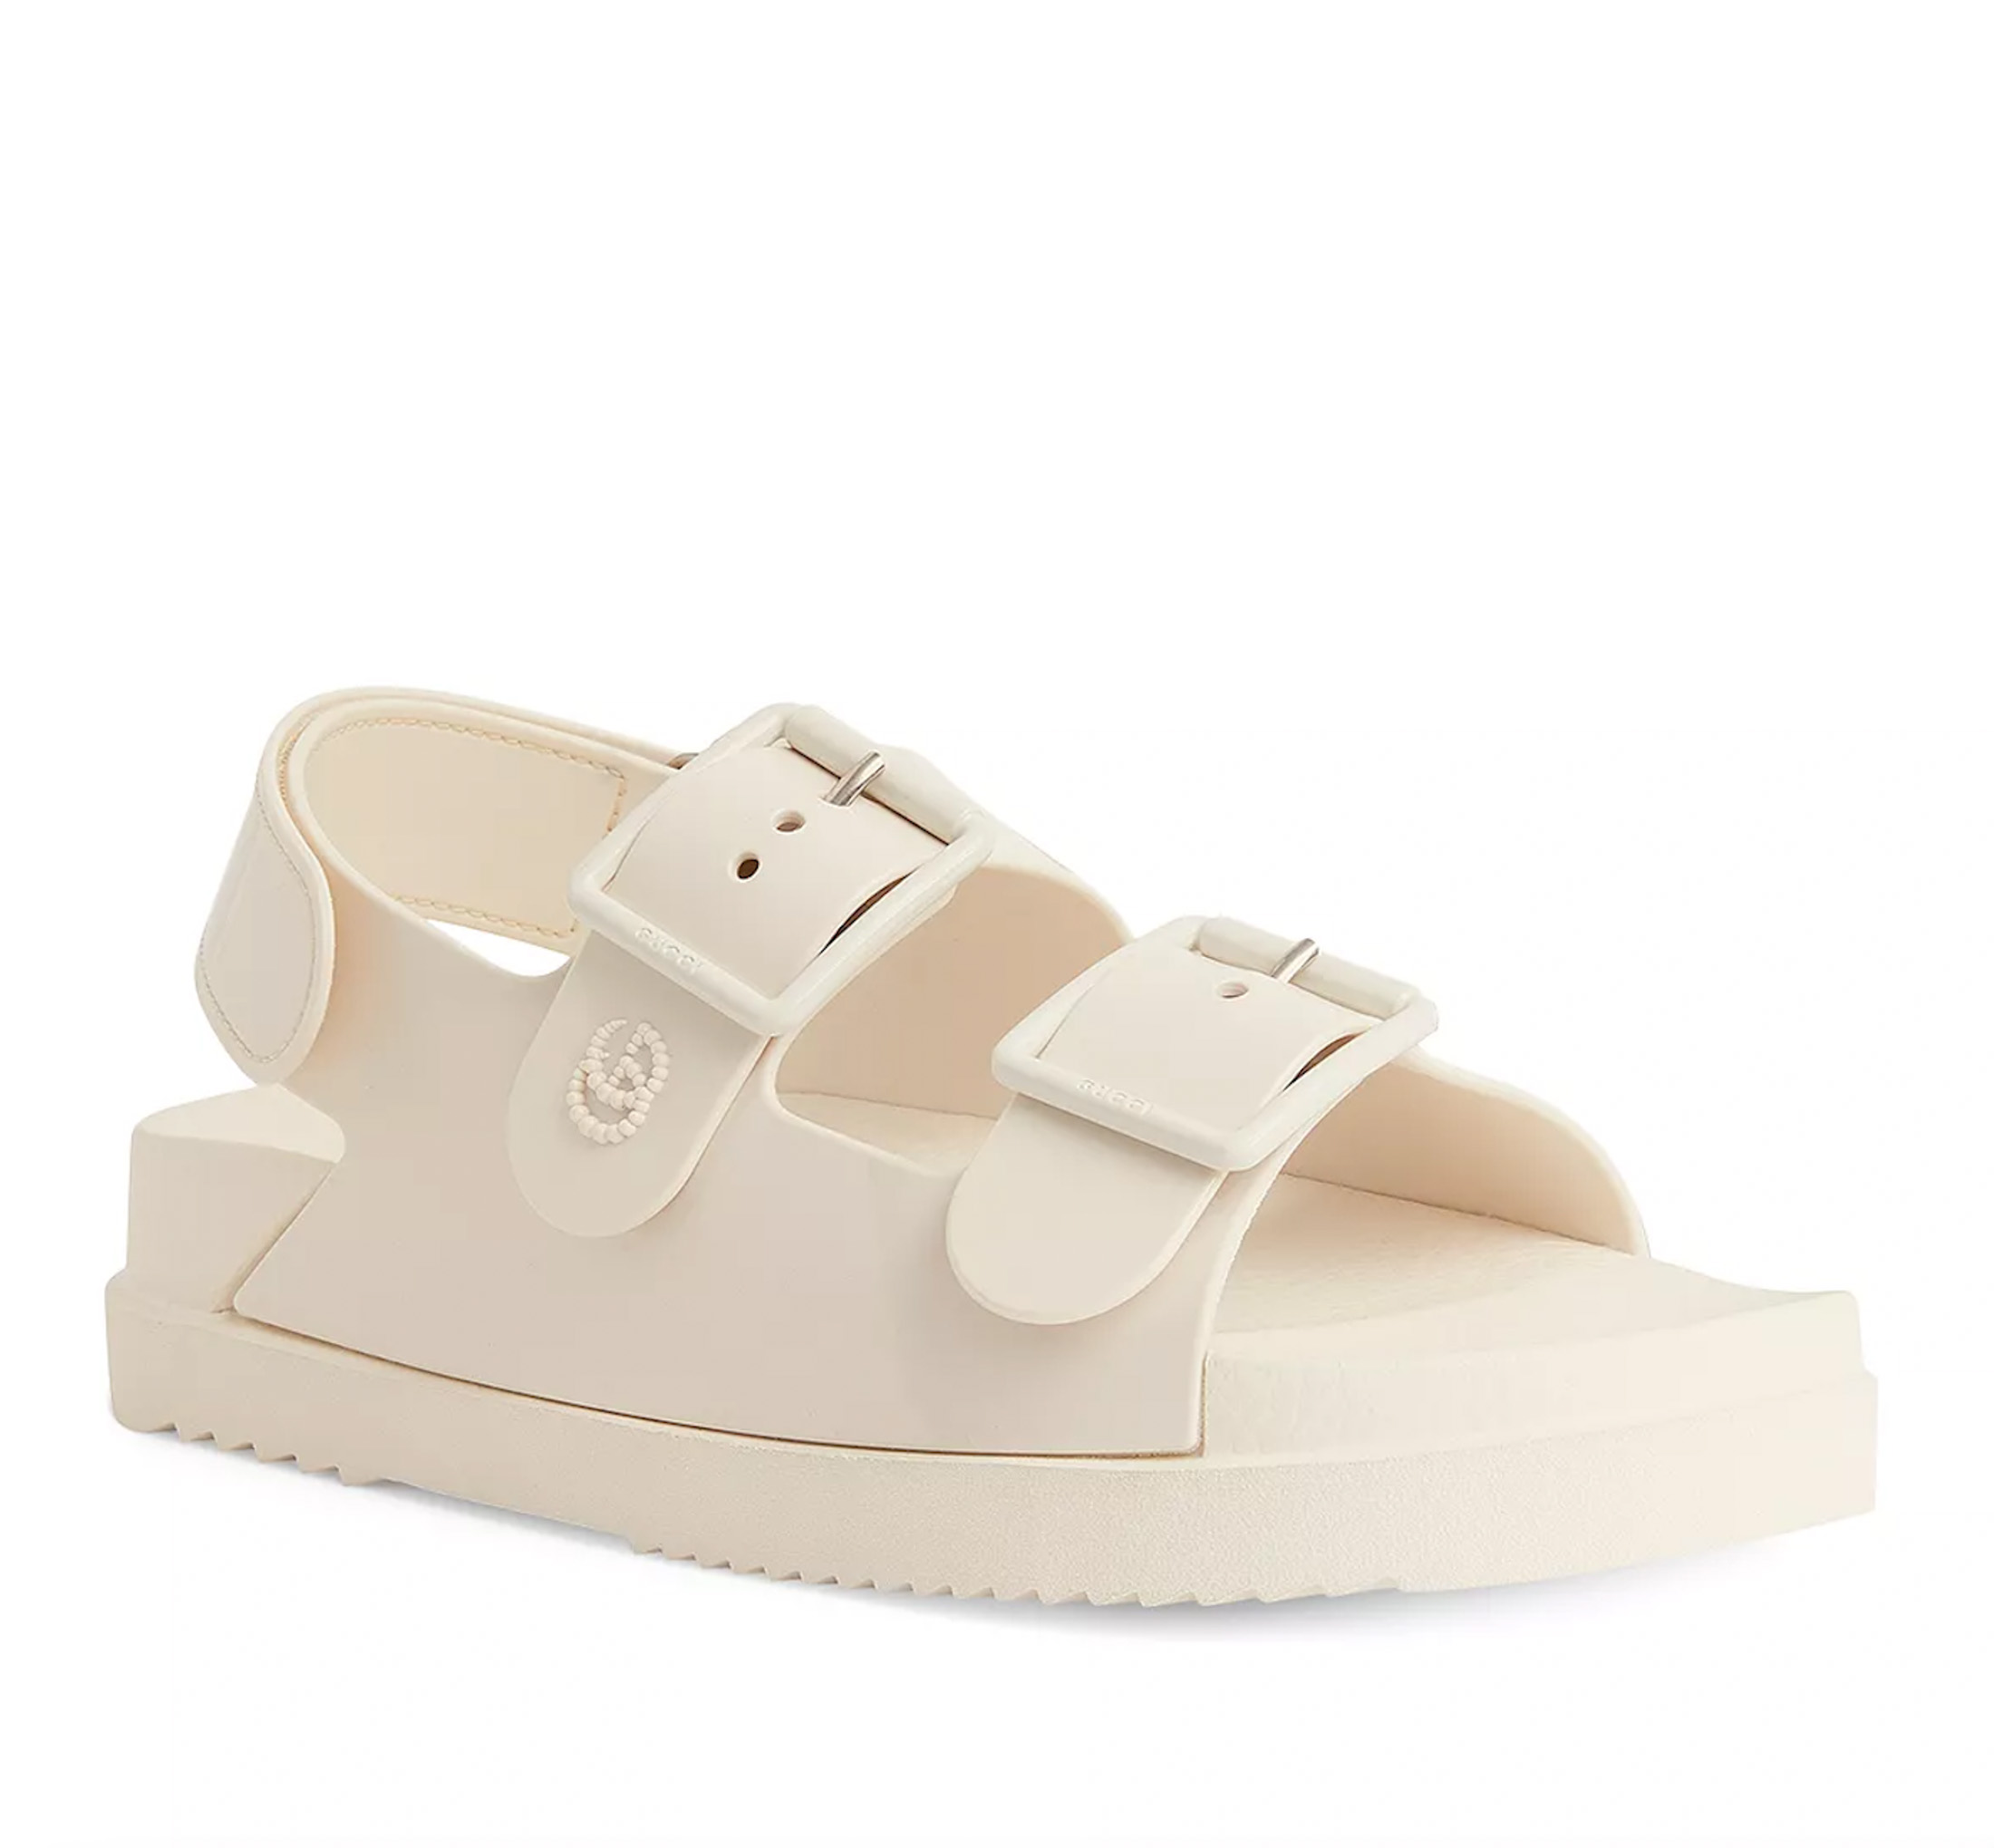 I am in love with these Gucci double strap platform sandals! They give me total dad sneaker vibes (and I love it).